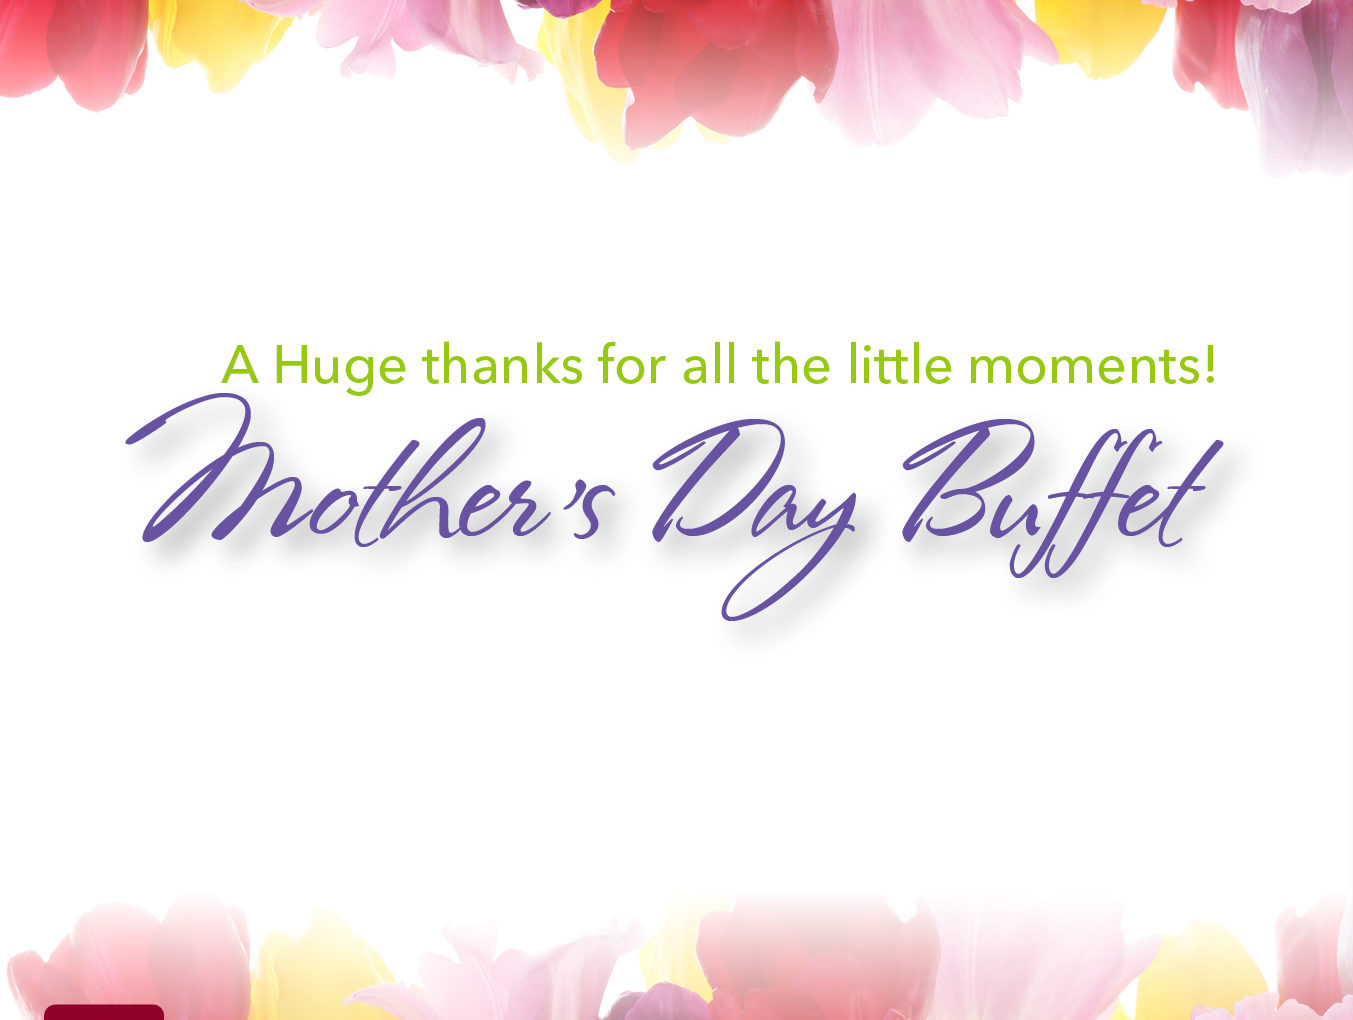 Mother's Day Buffet Sunday, May 12th 11am-3pm